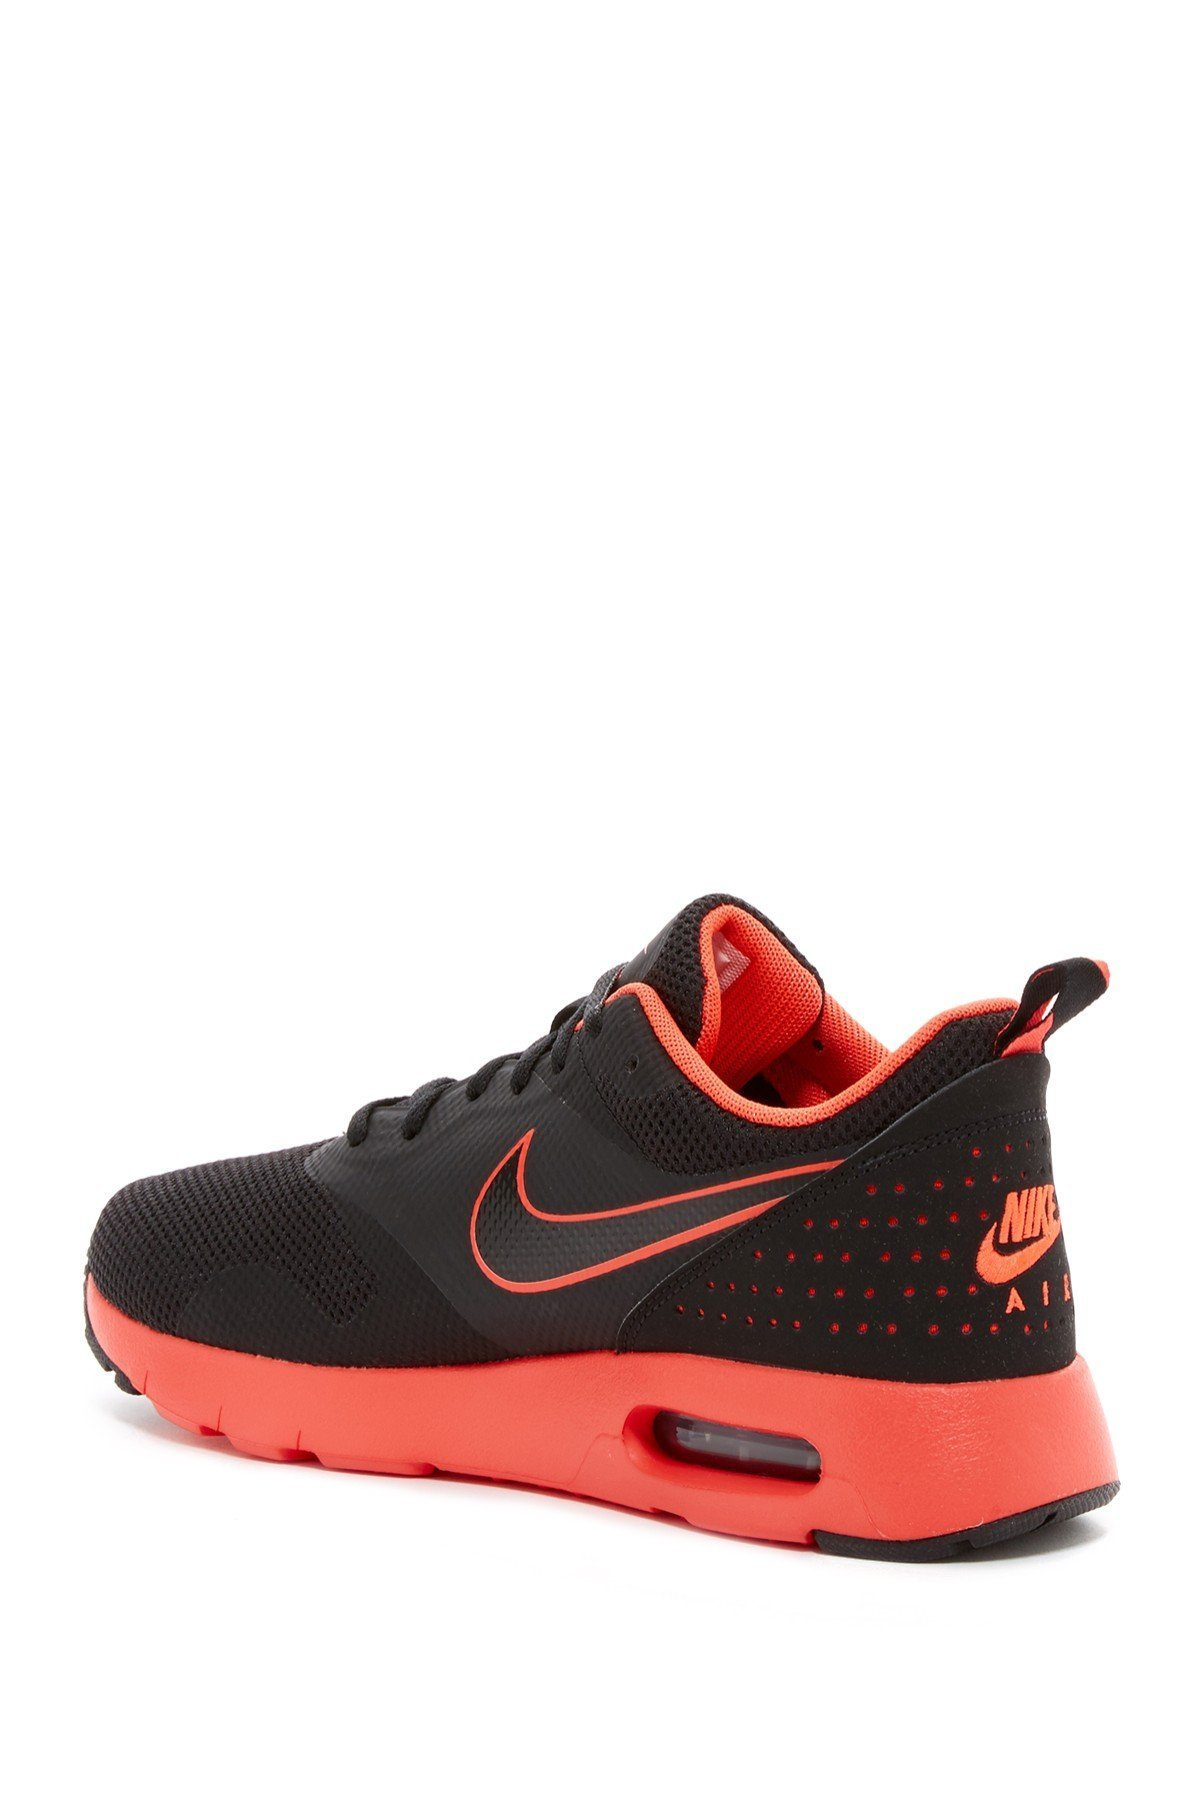 日本未入荷 Air Max Tavas FB Sneaker (Big Kid) 関送込